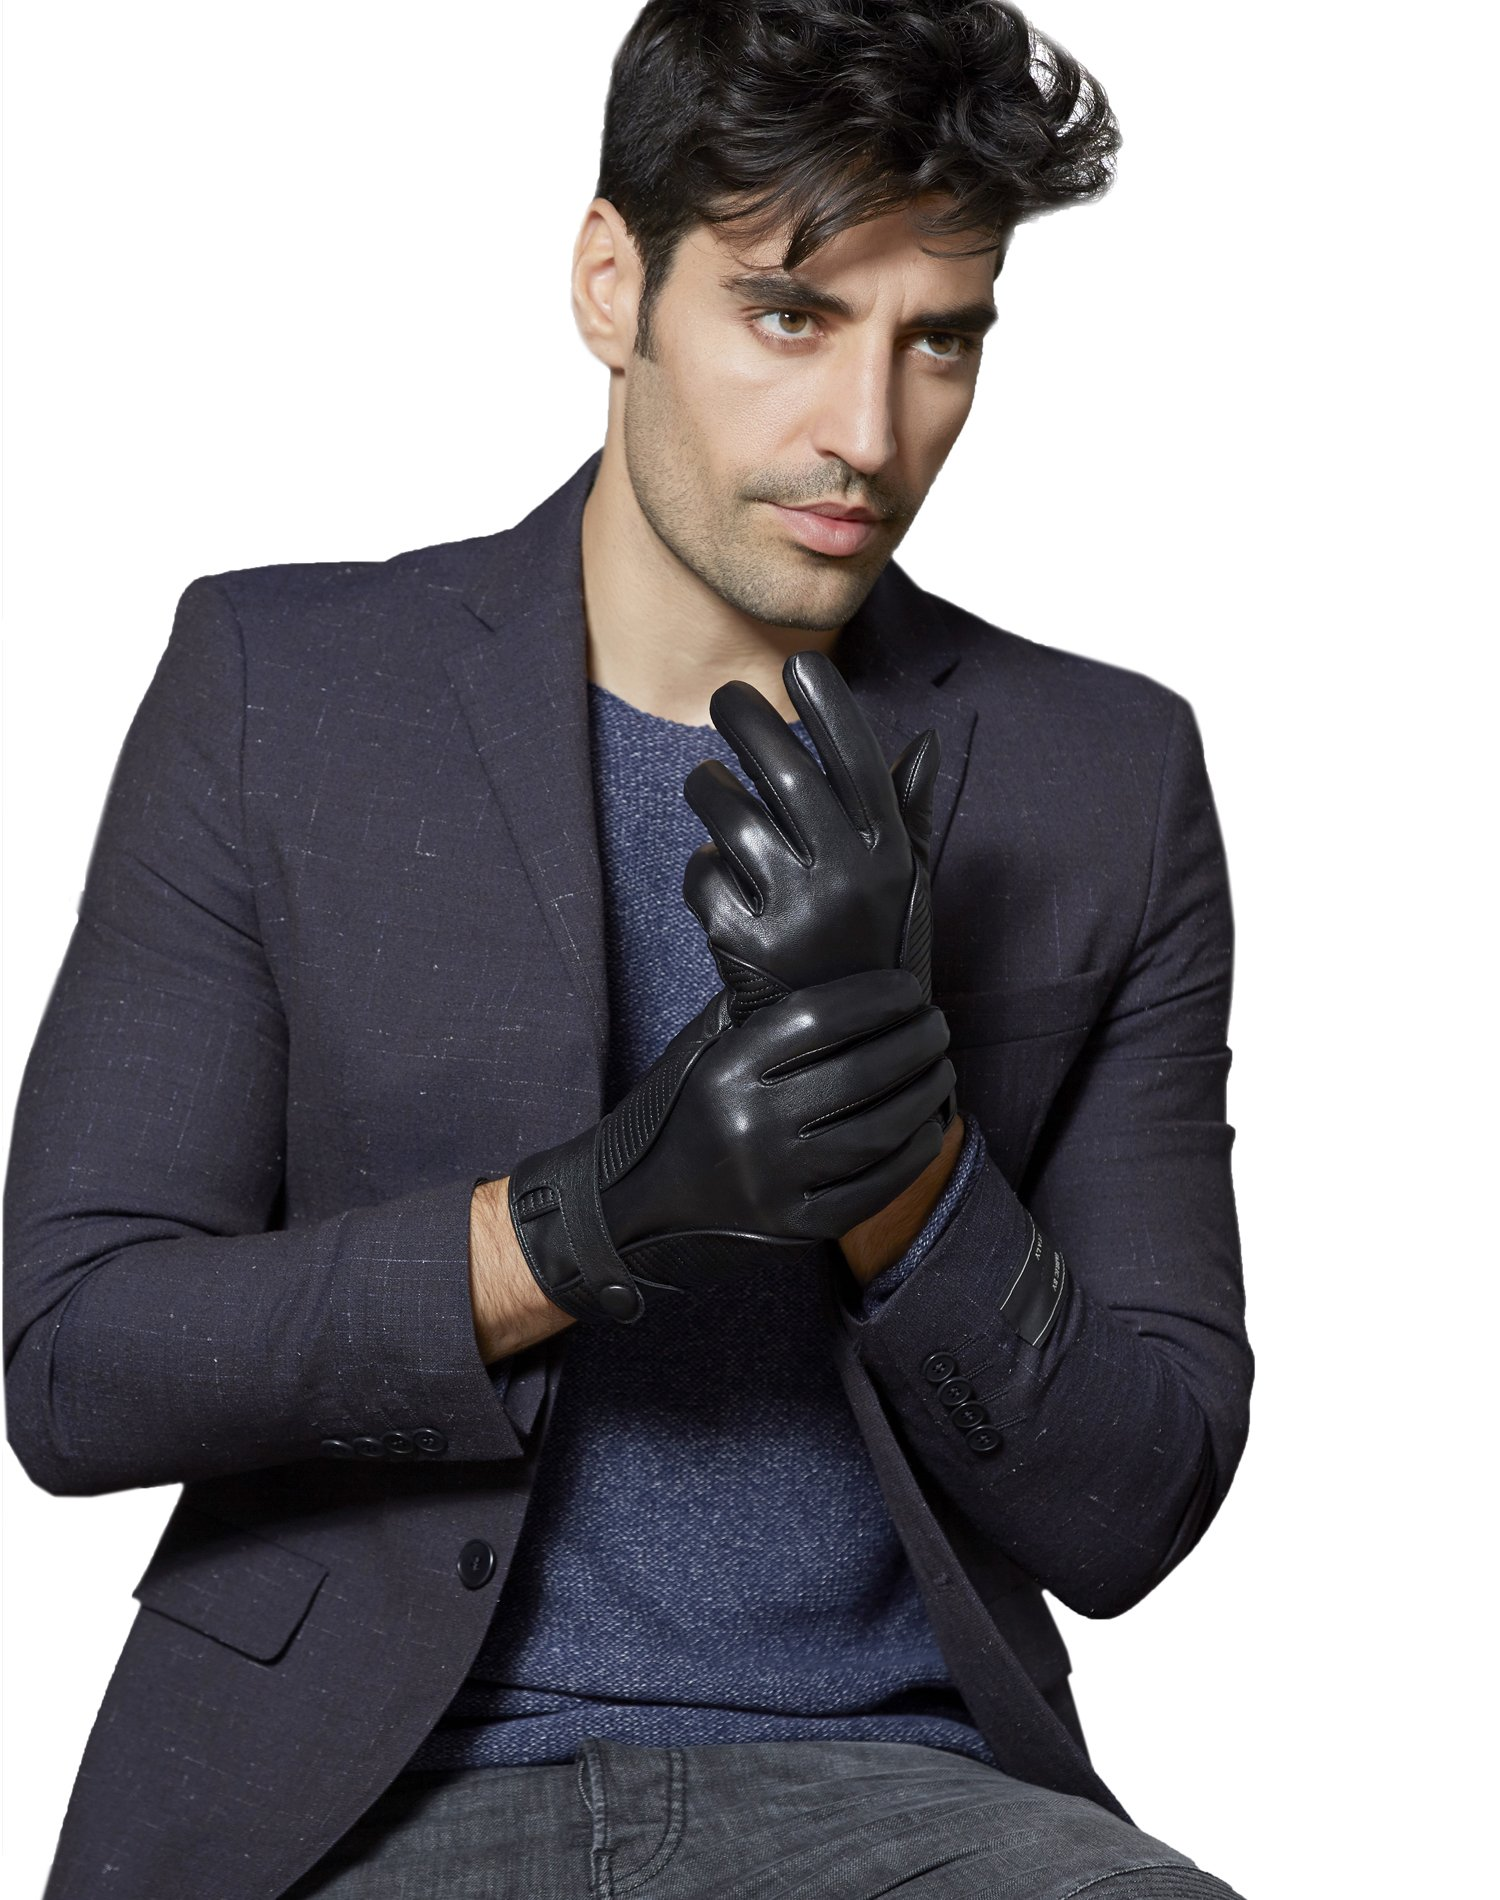 Fioretto 10% OFF Mens Gifts Mens Leather Gloves for Winter Driving Gloves Italian Nappa Leather Lined Motorcycle Gloves Mens Gloves Black L/XL